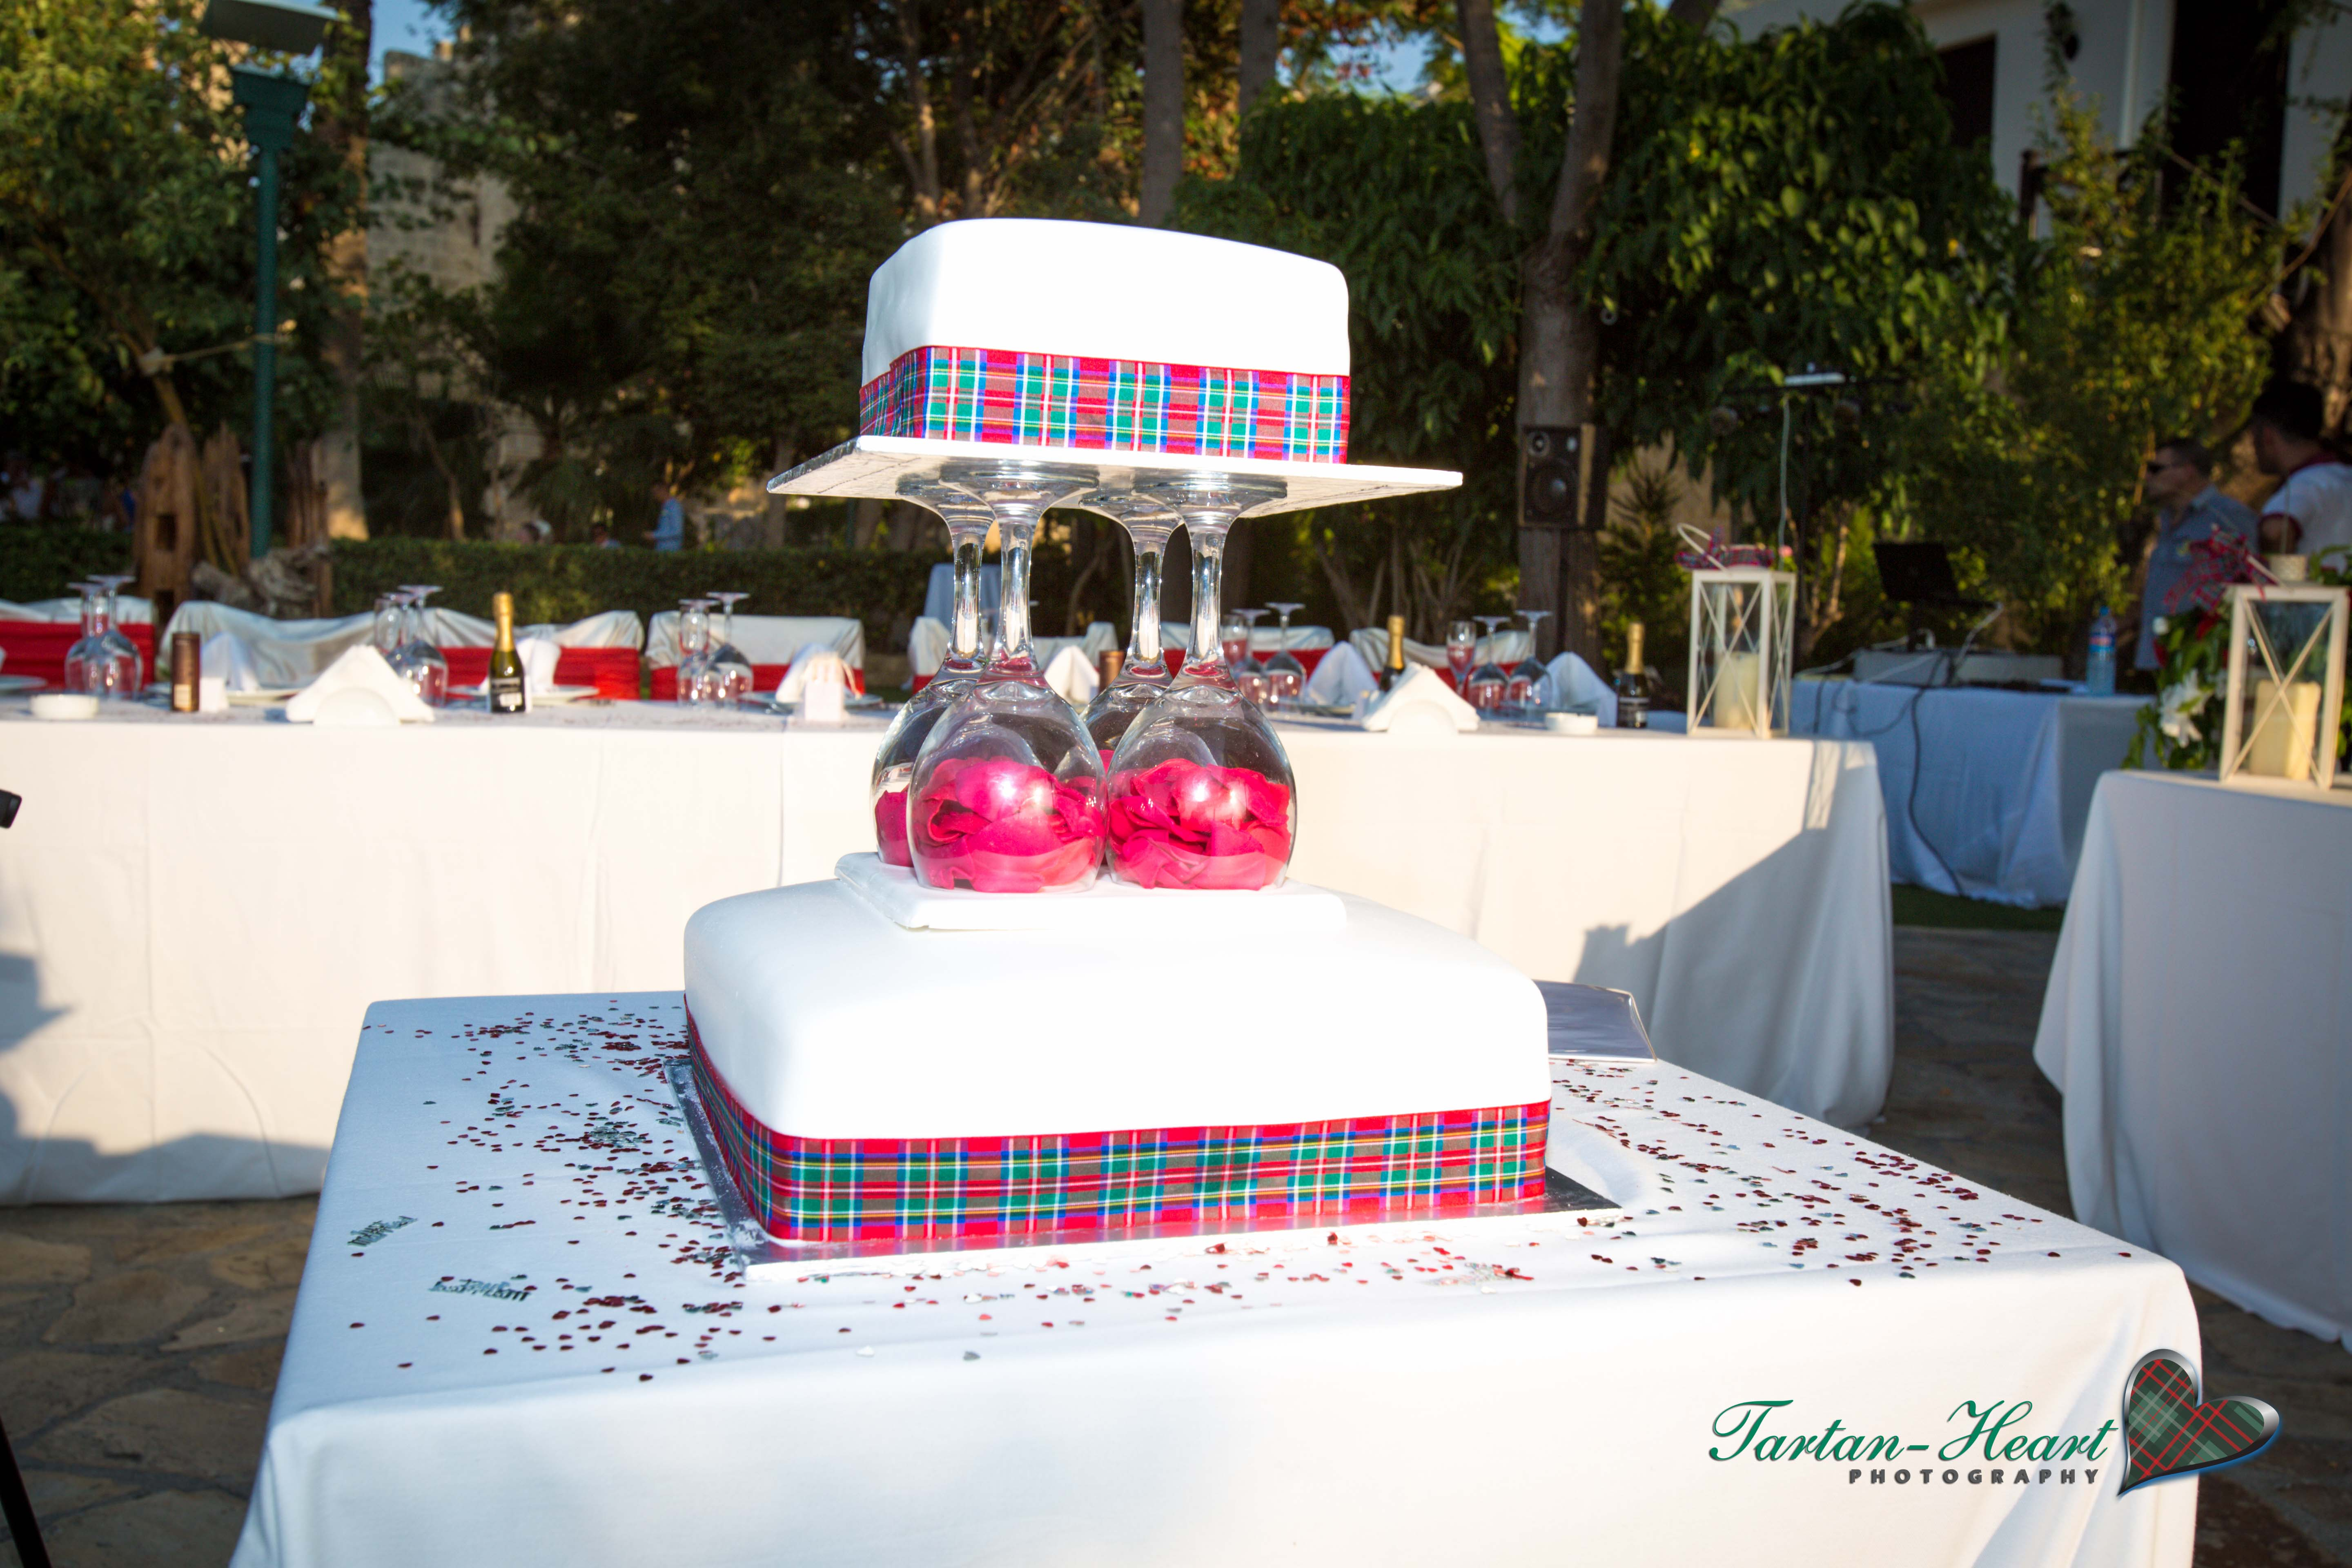 Wedding cakes in Northern Cyprus (52)